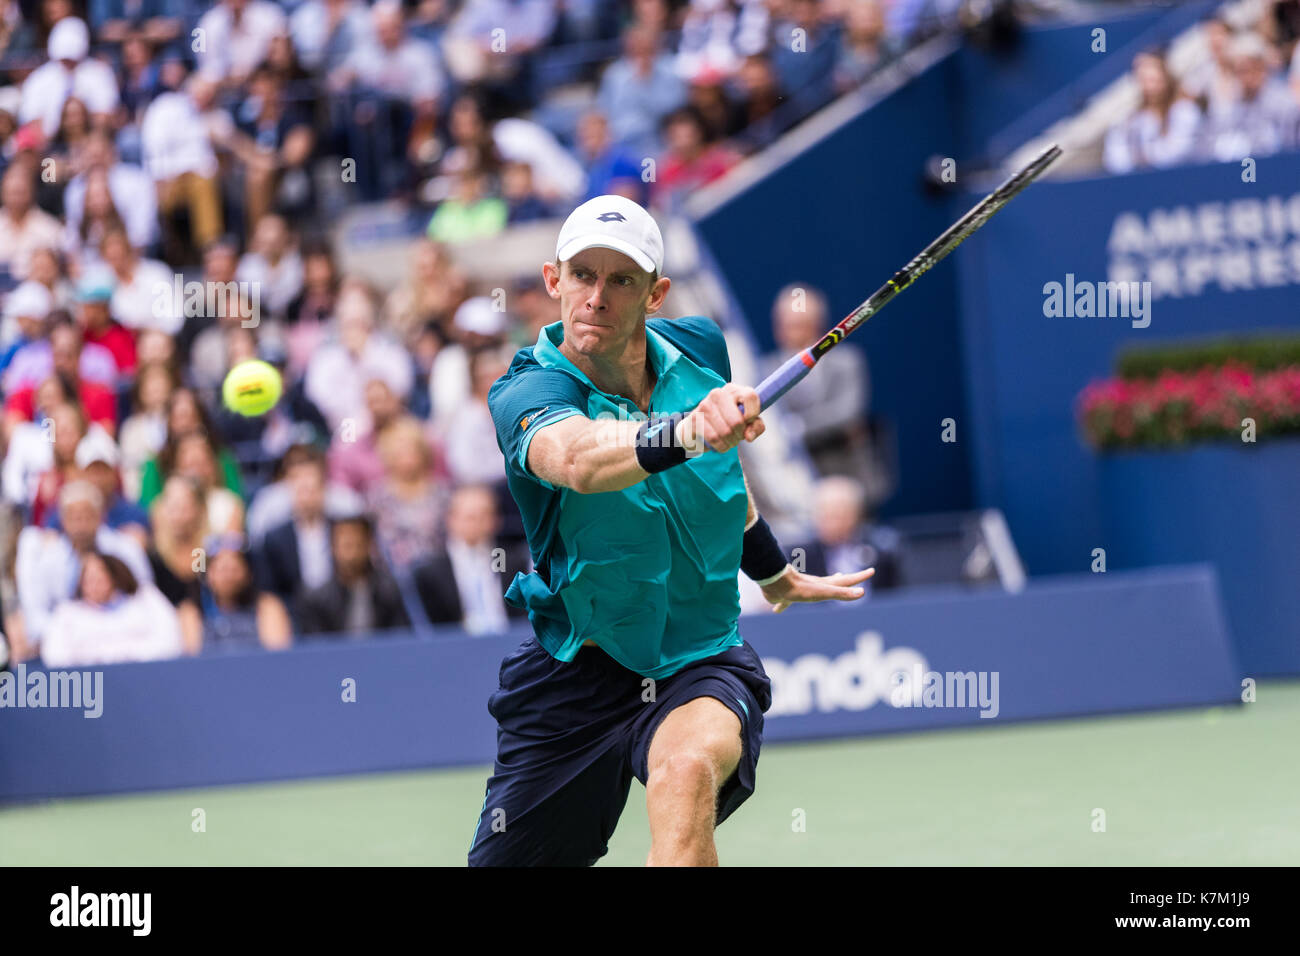 Kevin Anderson (RSA) runner up in the Men's Singles Final  at the 2017 US Open Tennis Championships - Stock Image